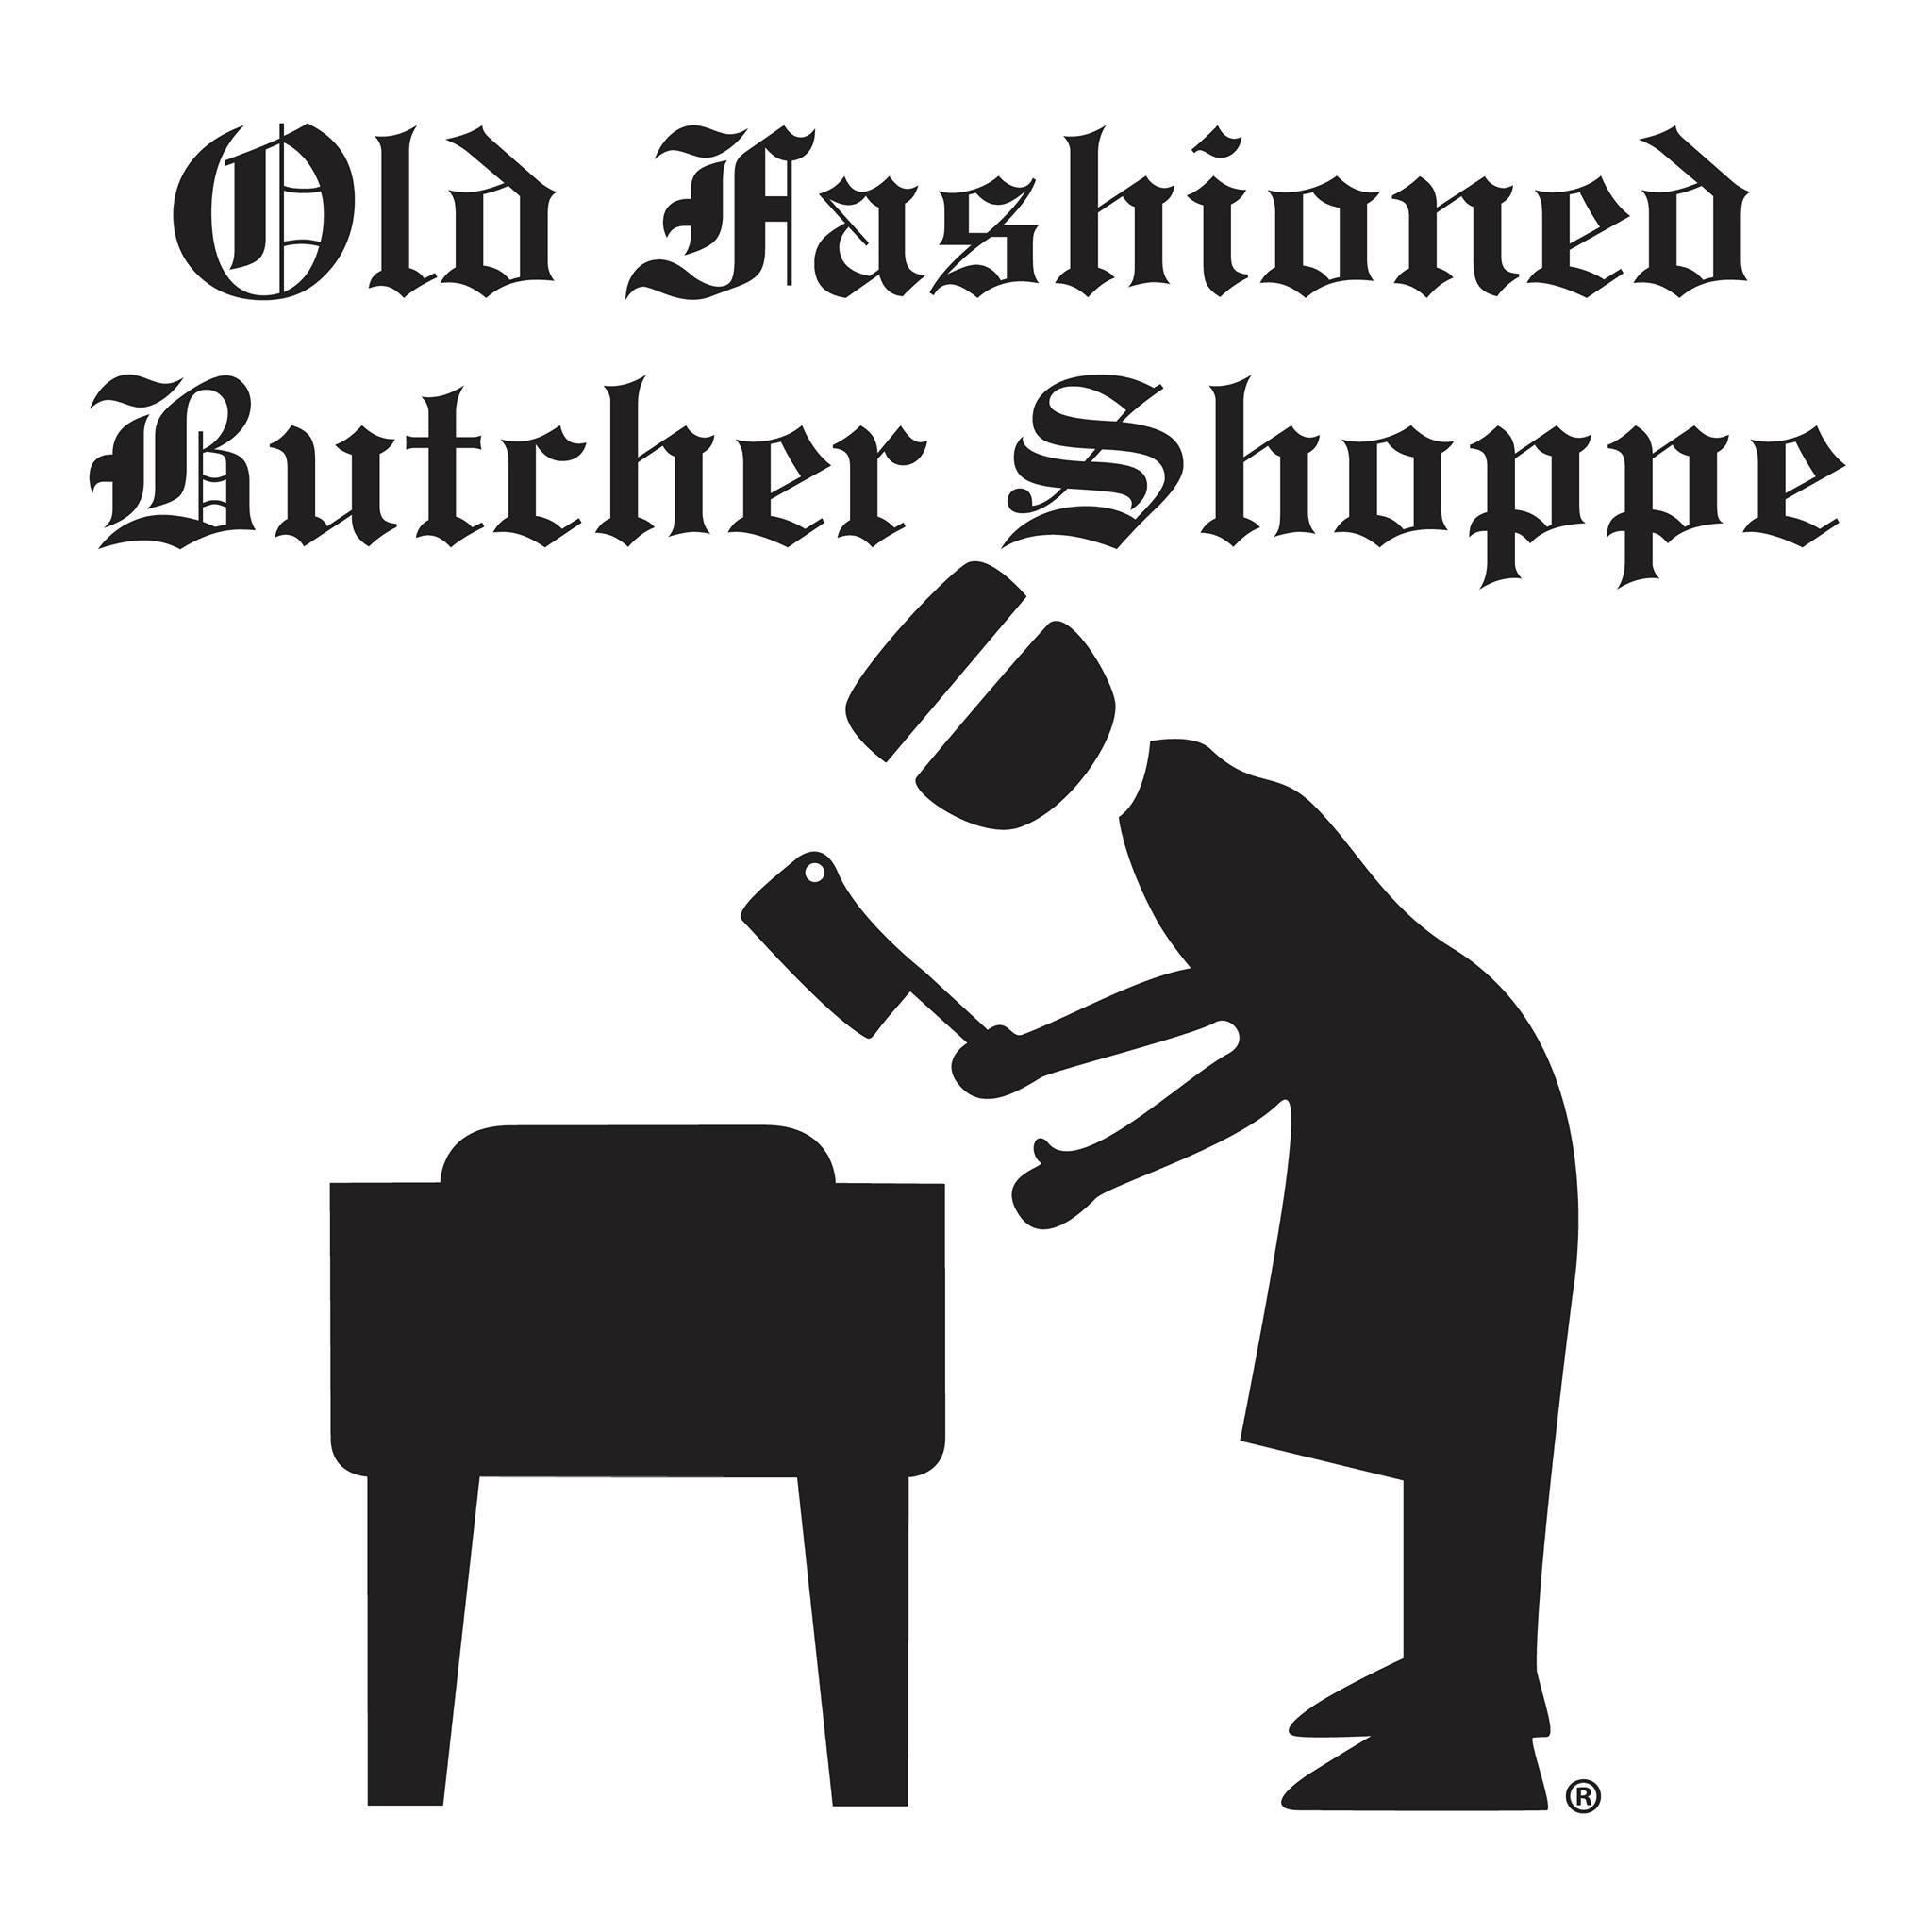 Old Fashioned Butcher Shoppe